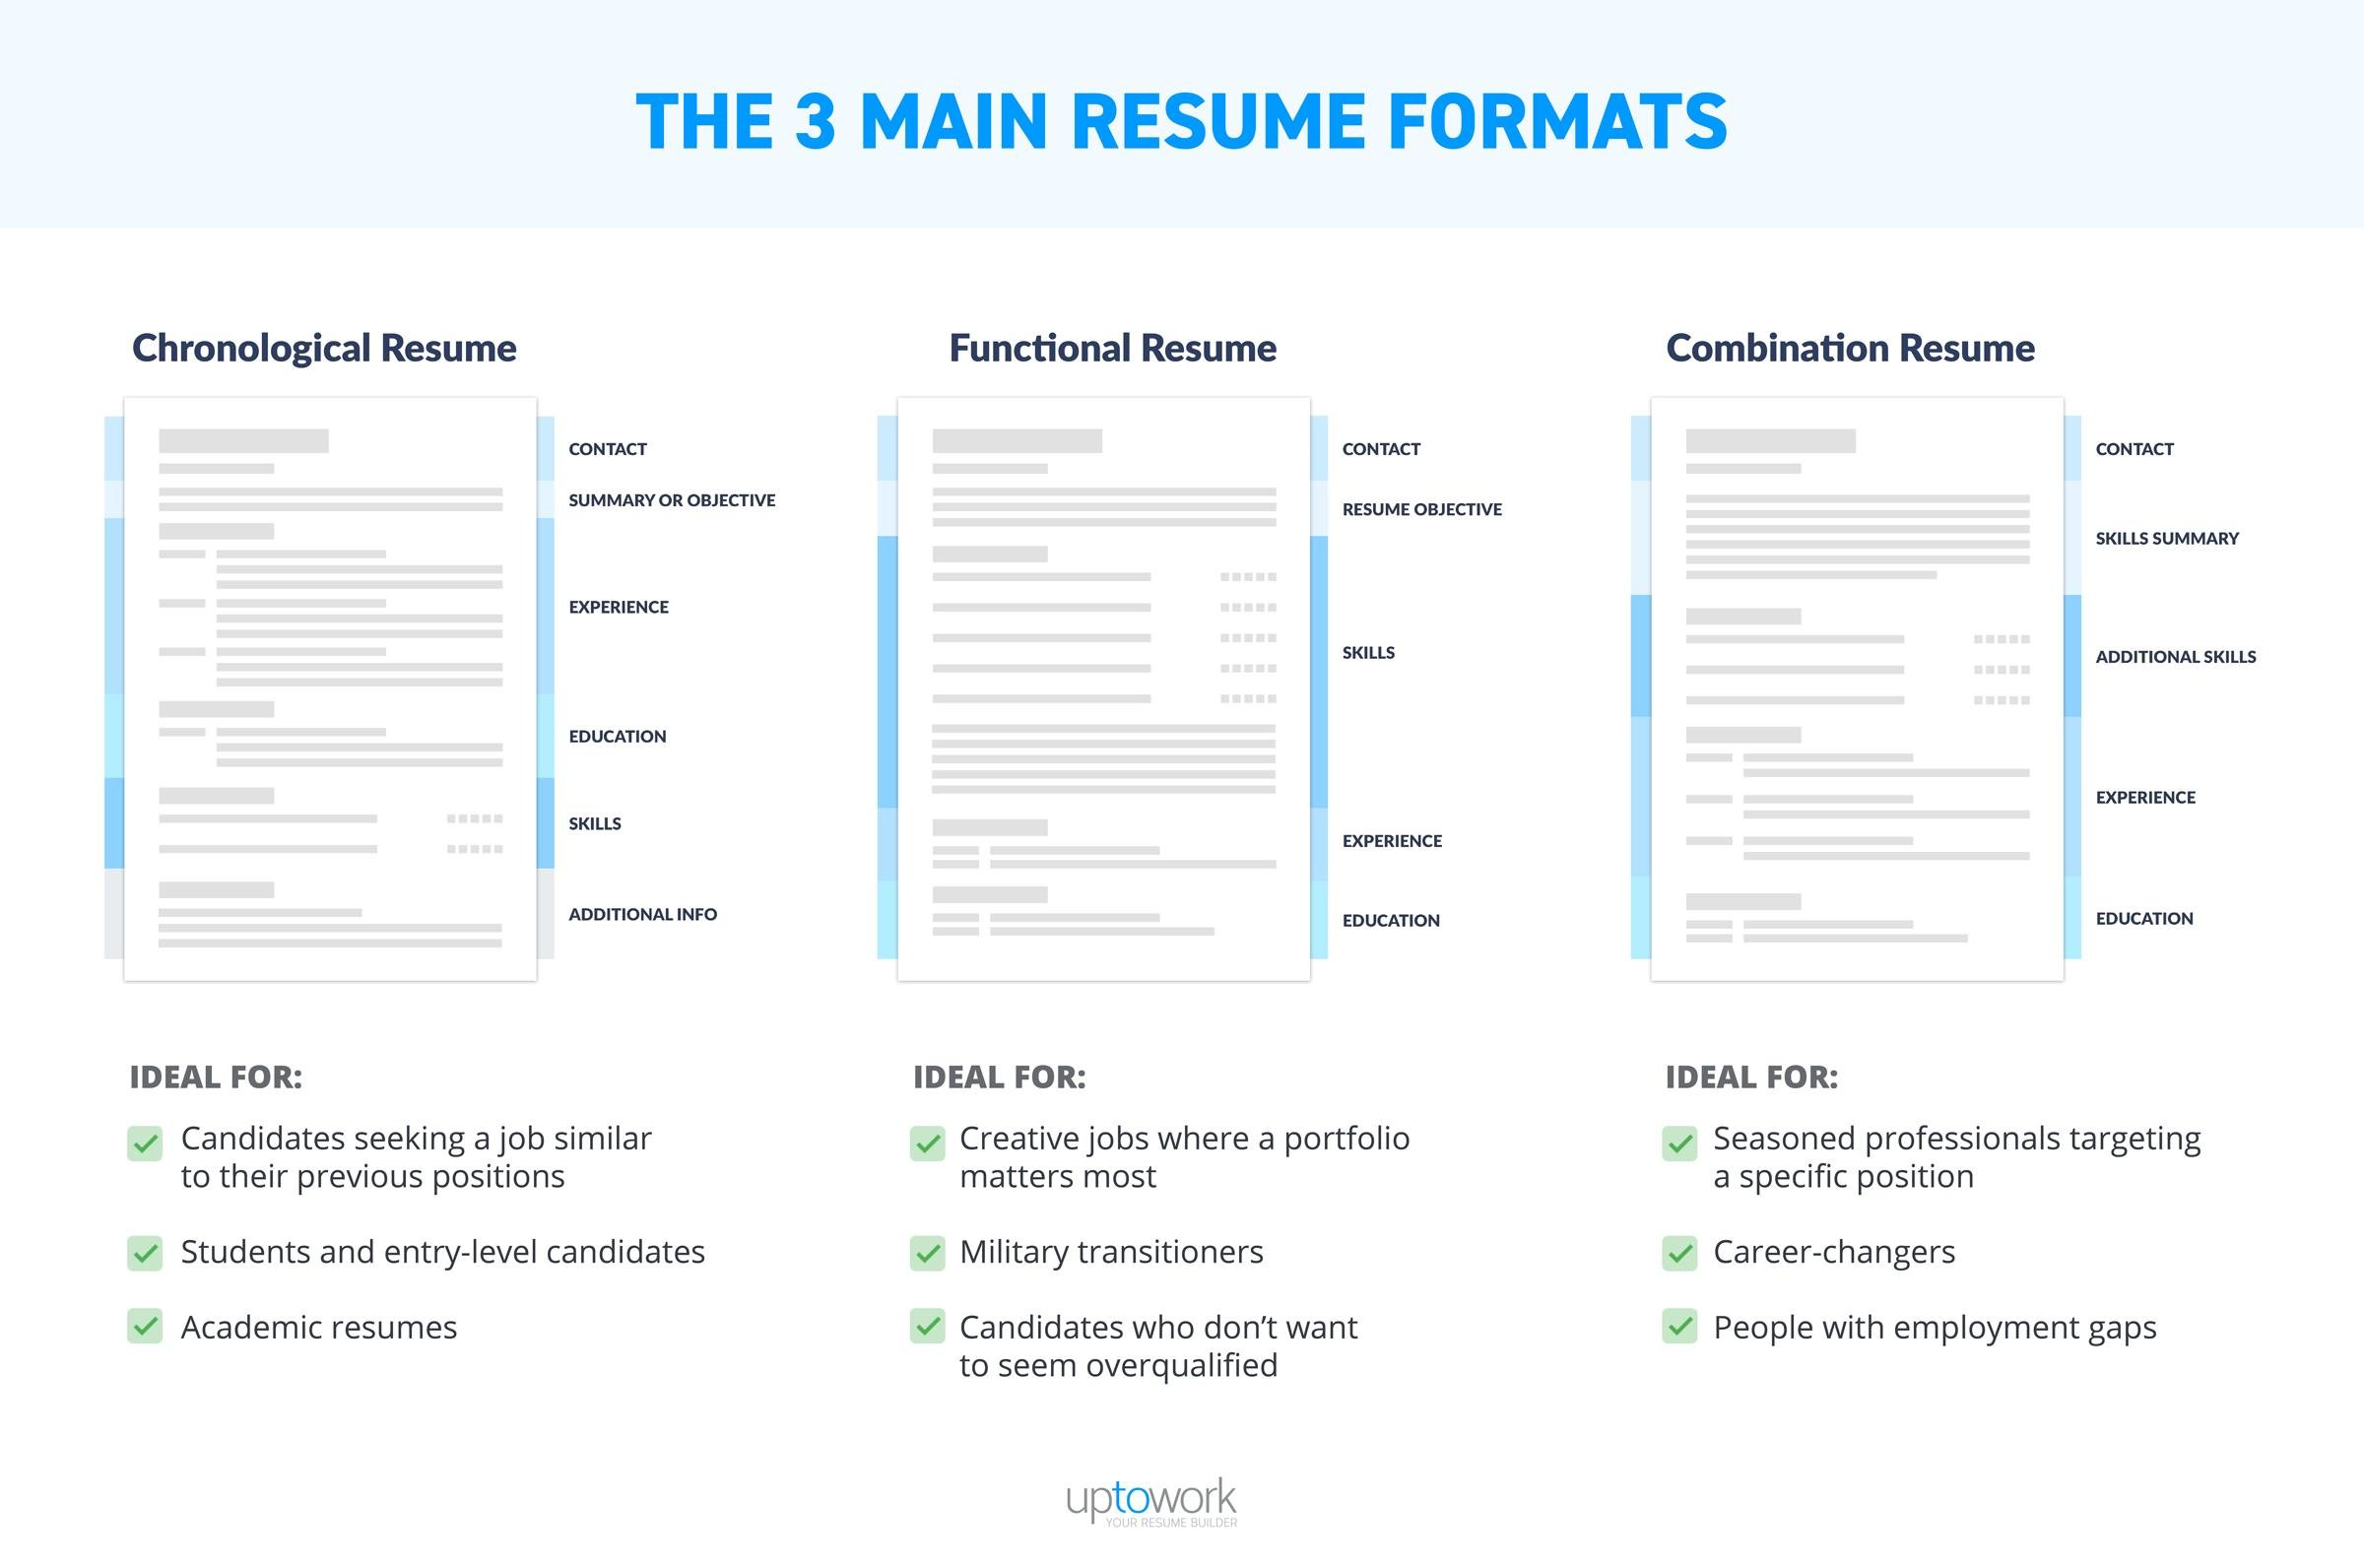 best resume format professional samples for job interview example of three main formats Resume Best Resume Format For Job Interview